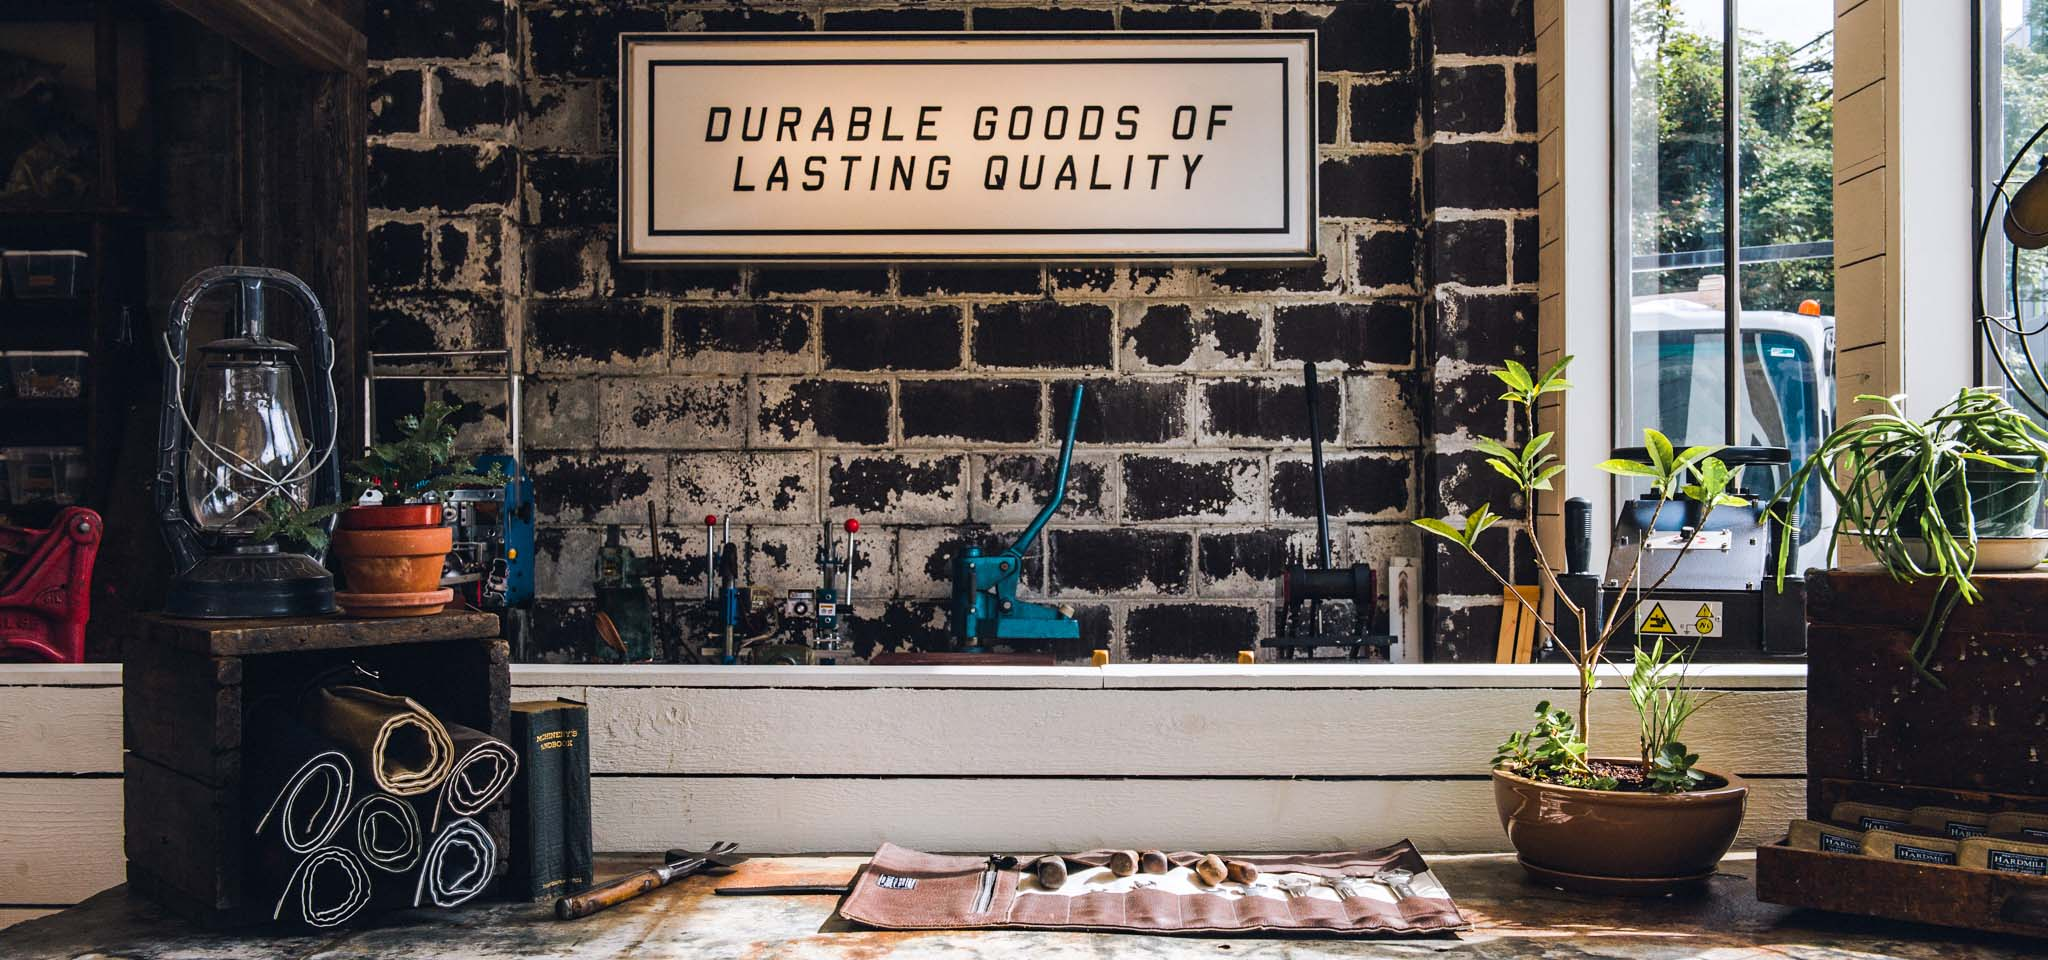 Interior of Hardmill shop, with leather goods, tools, and complimentary products.